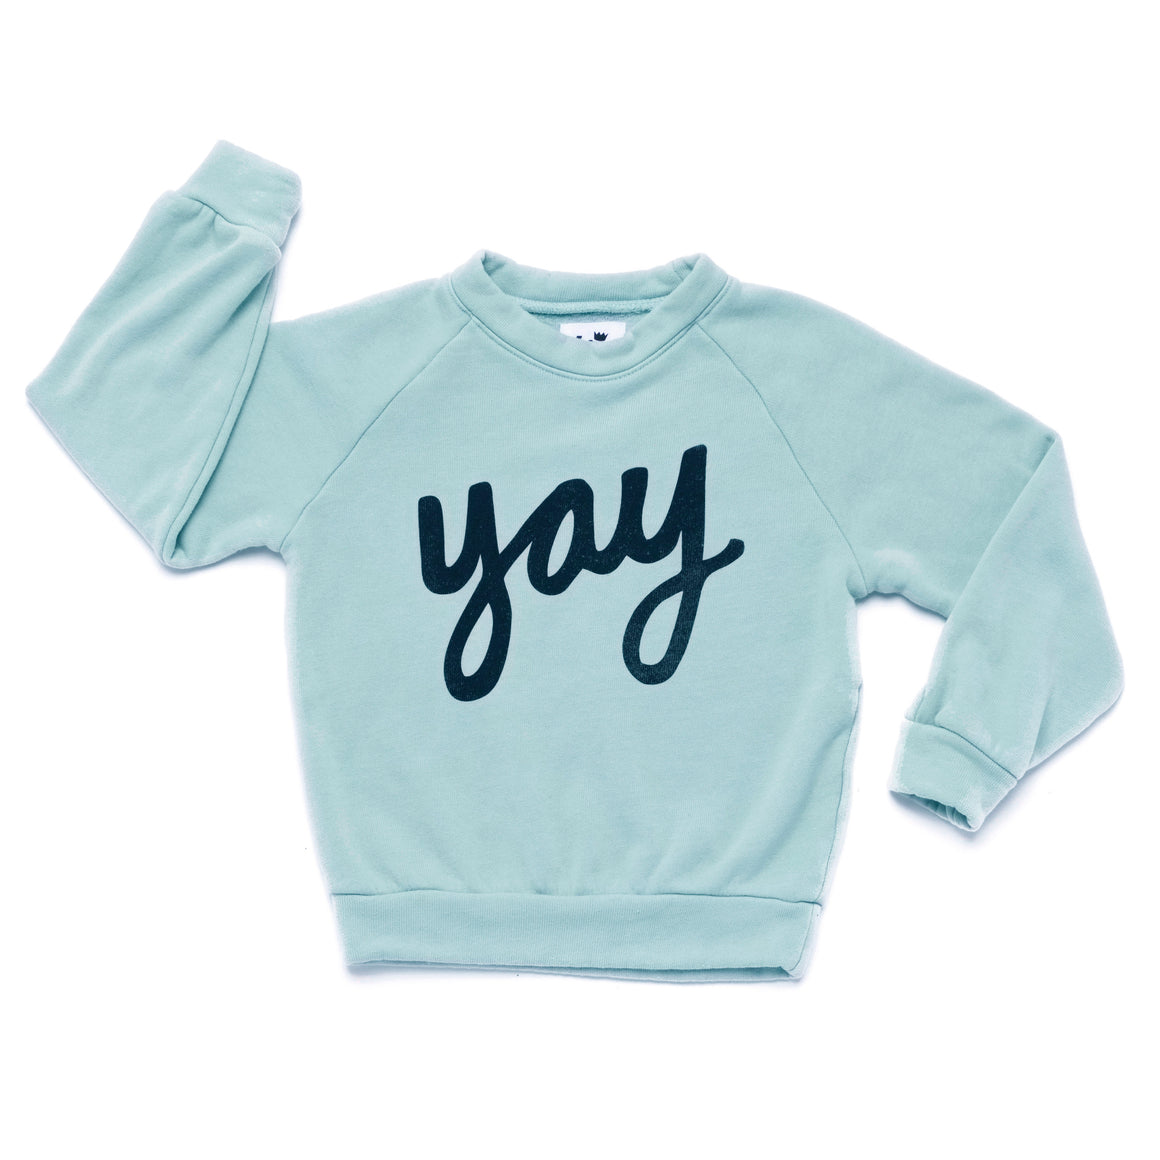 Yay Graphic Raglan Sweatshirt, Ice